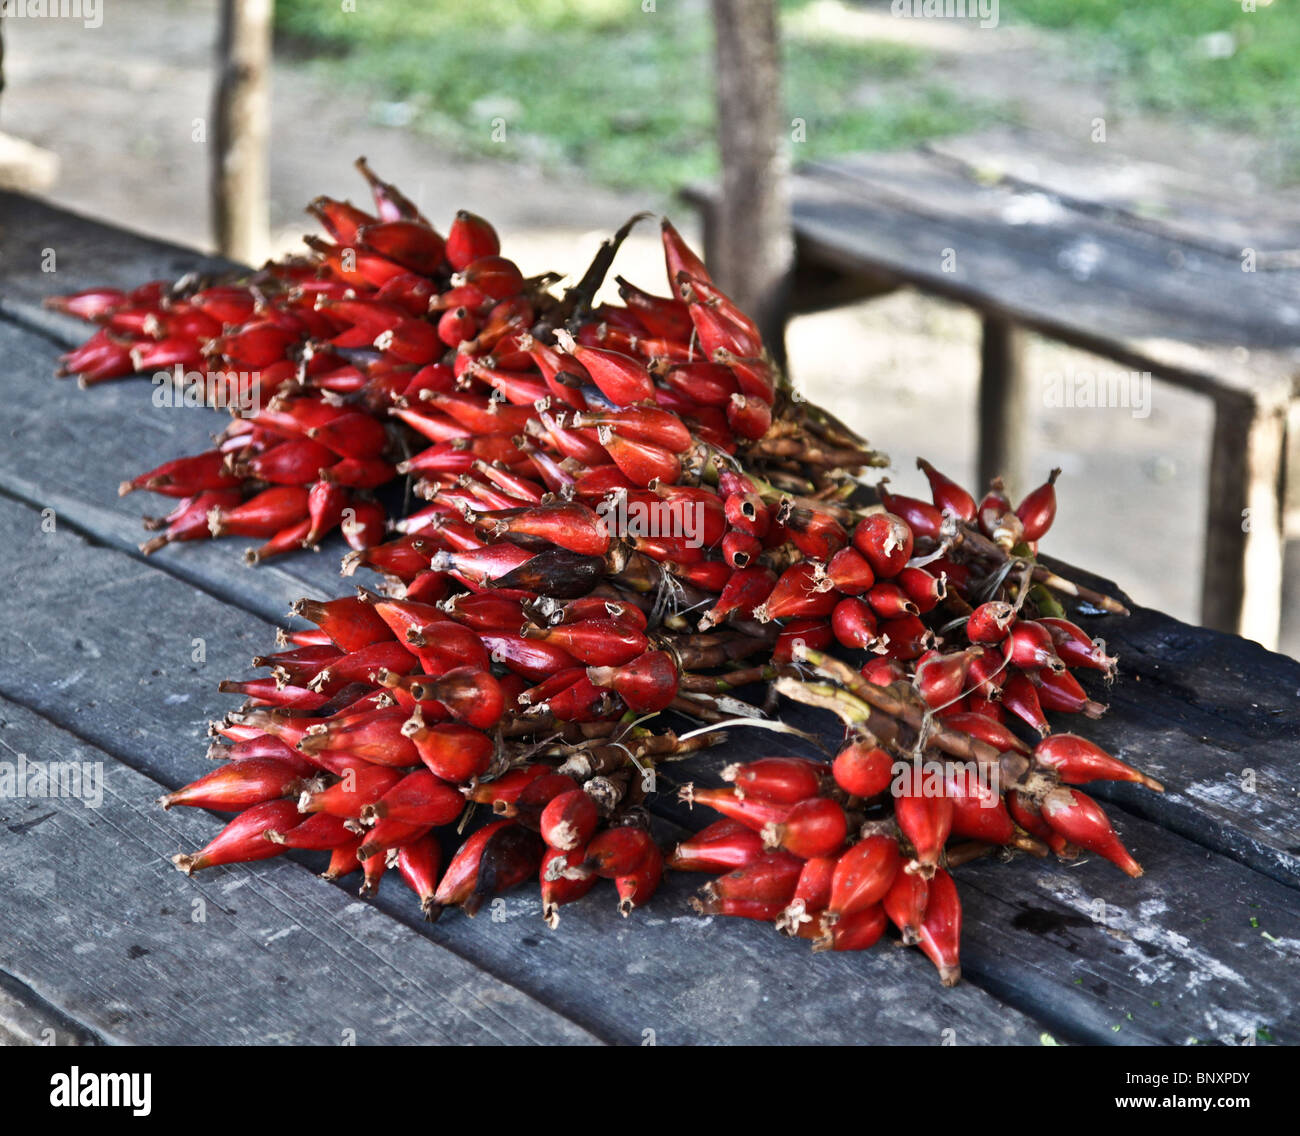 Red chilli peppers for sale on a wooden table street stall in Ranomafana village, south-eastern Madagascar. - Stock Image